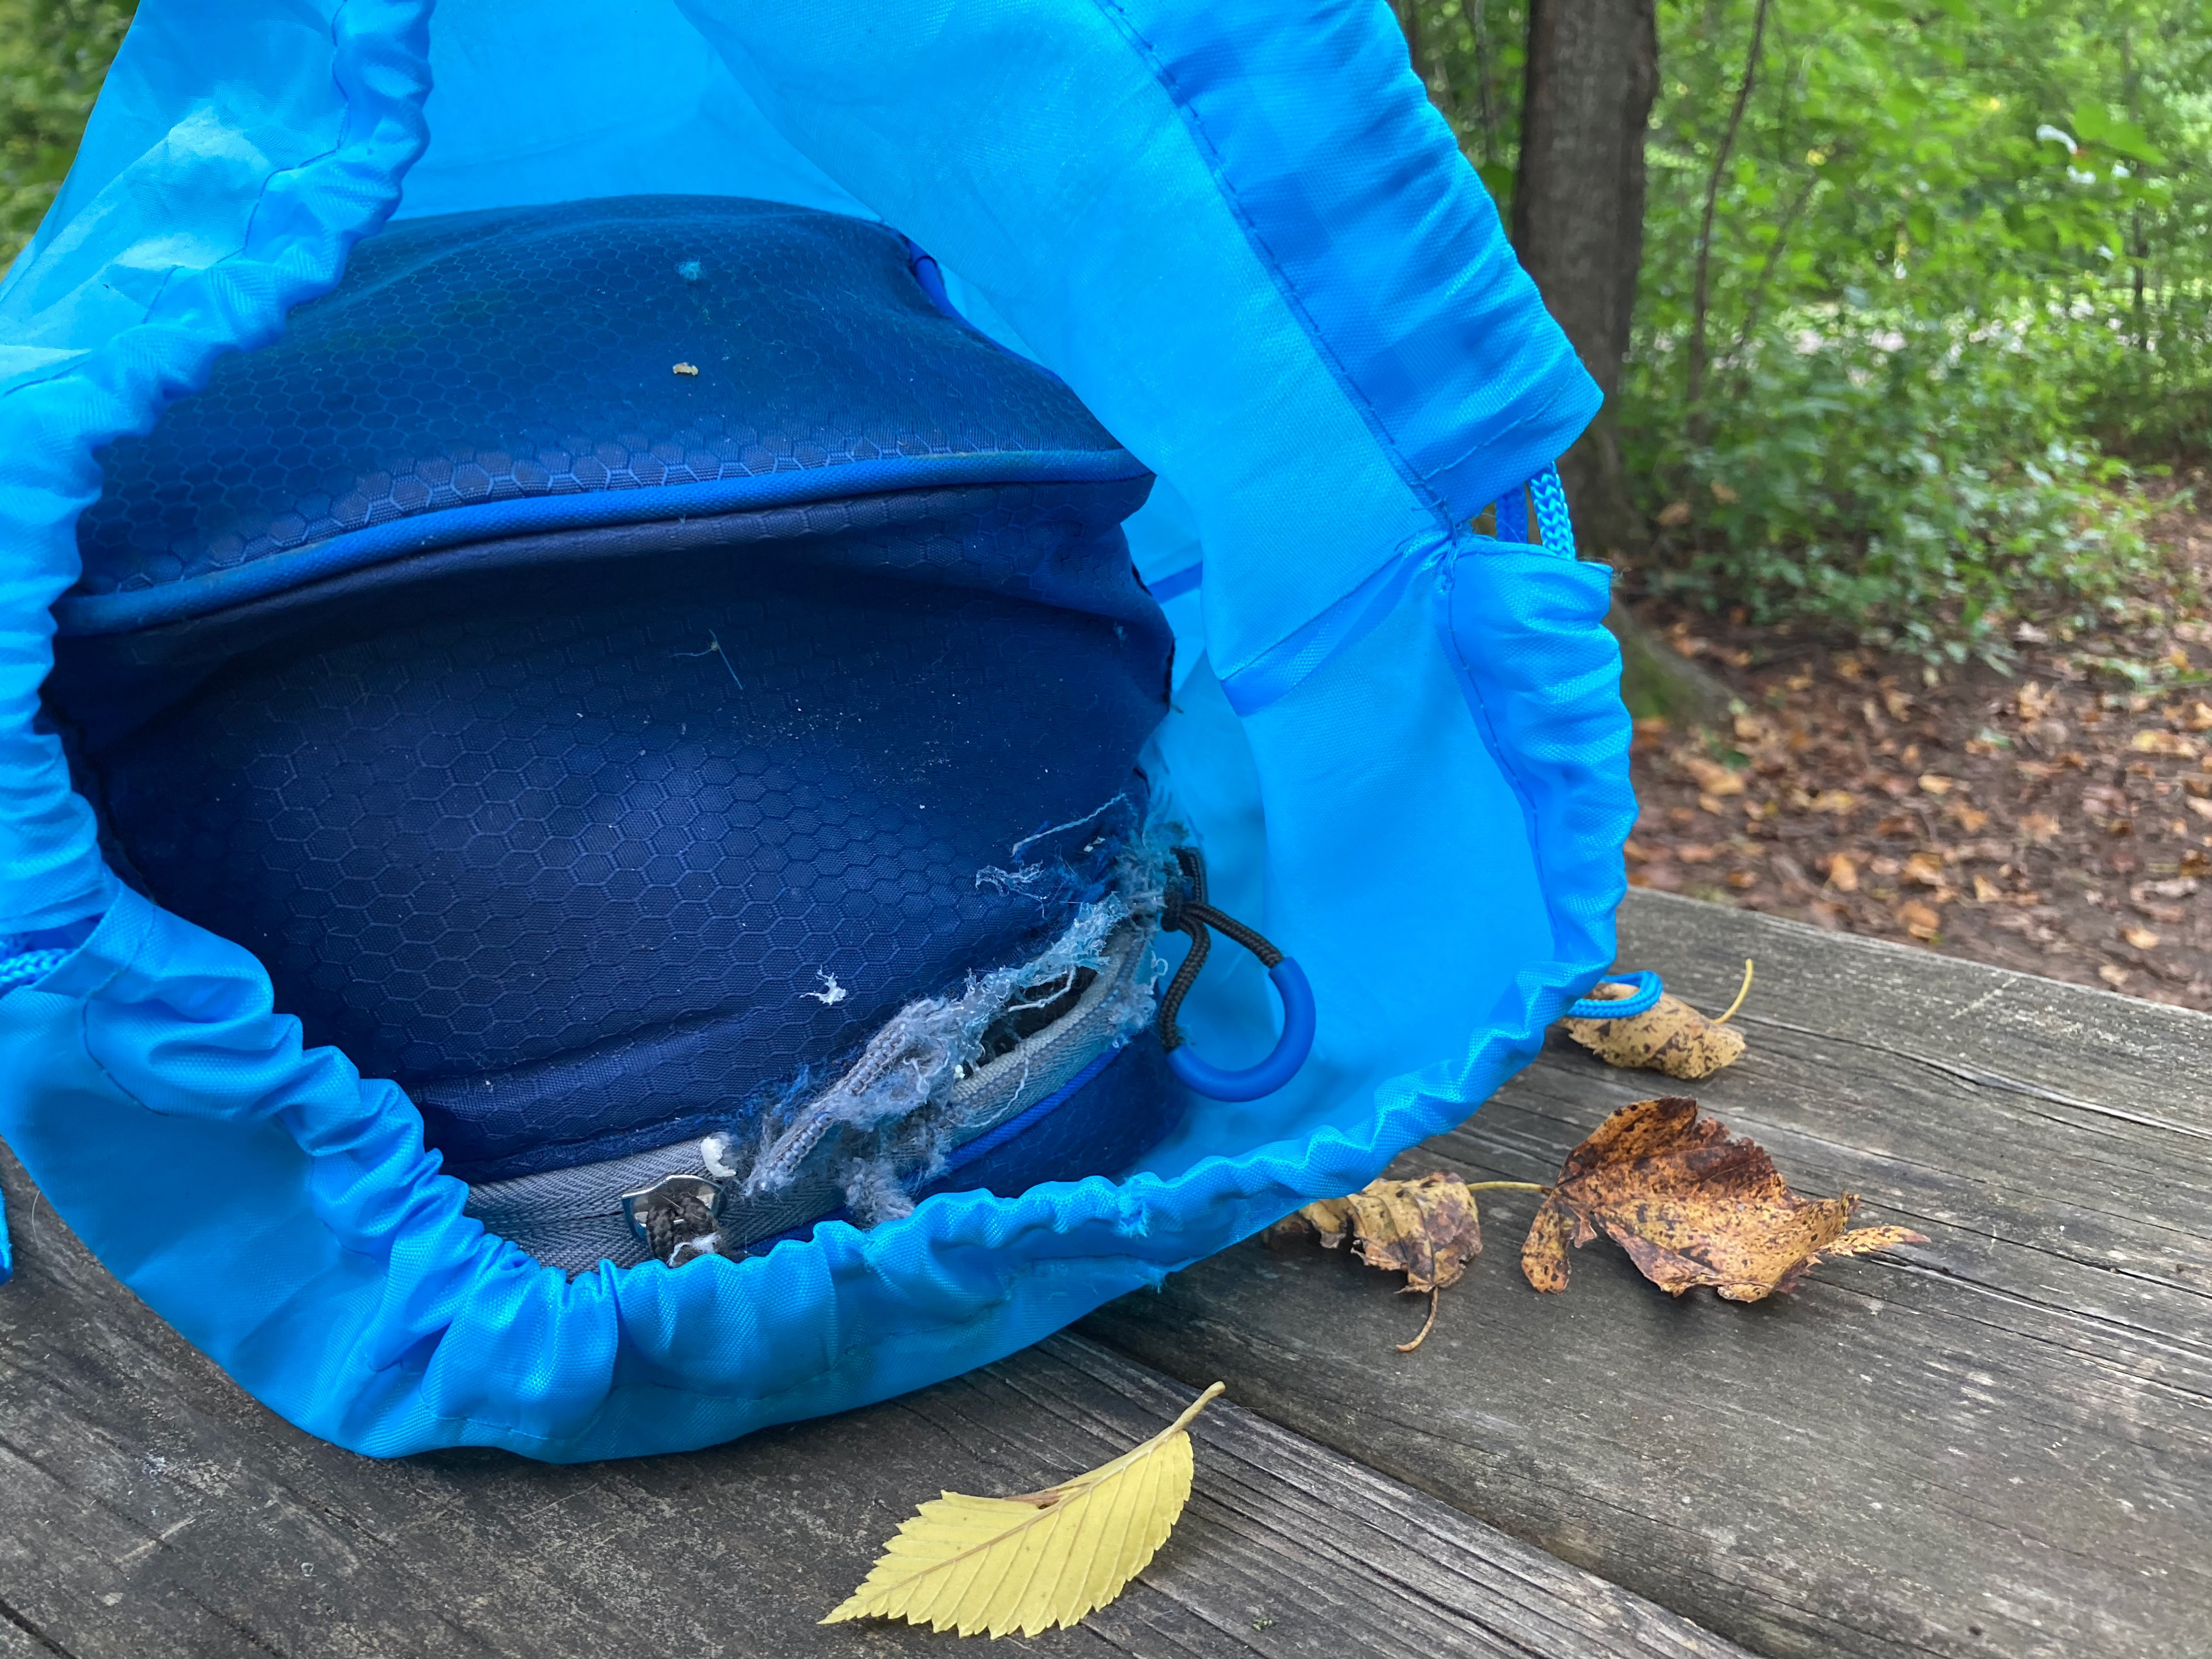 My lunch bag, infiltrated by squirrels, enclosed in a baby blue bag.